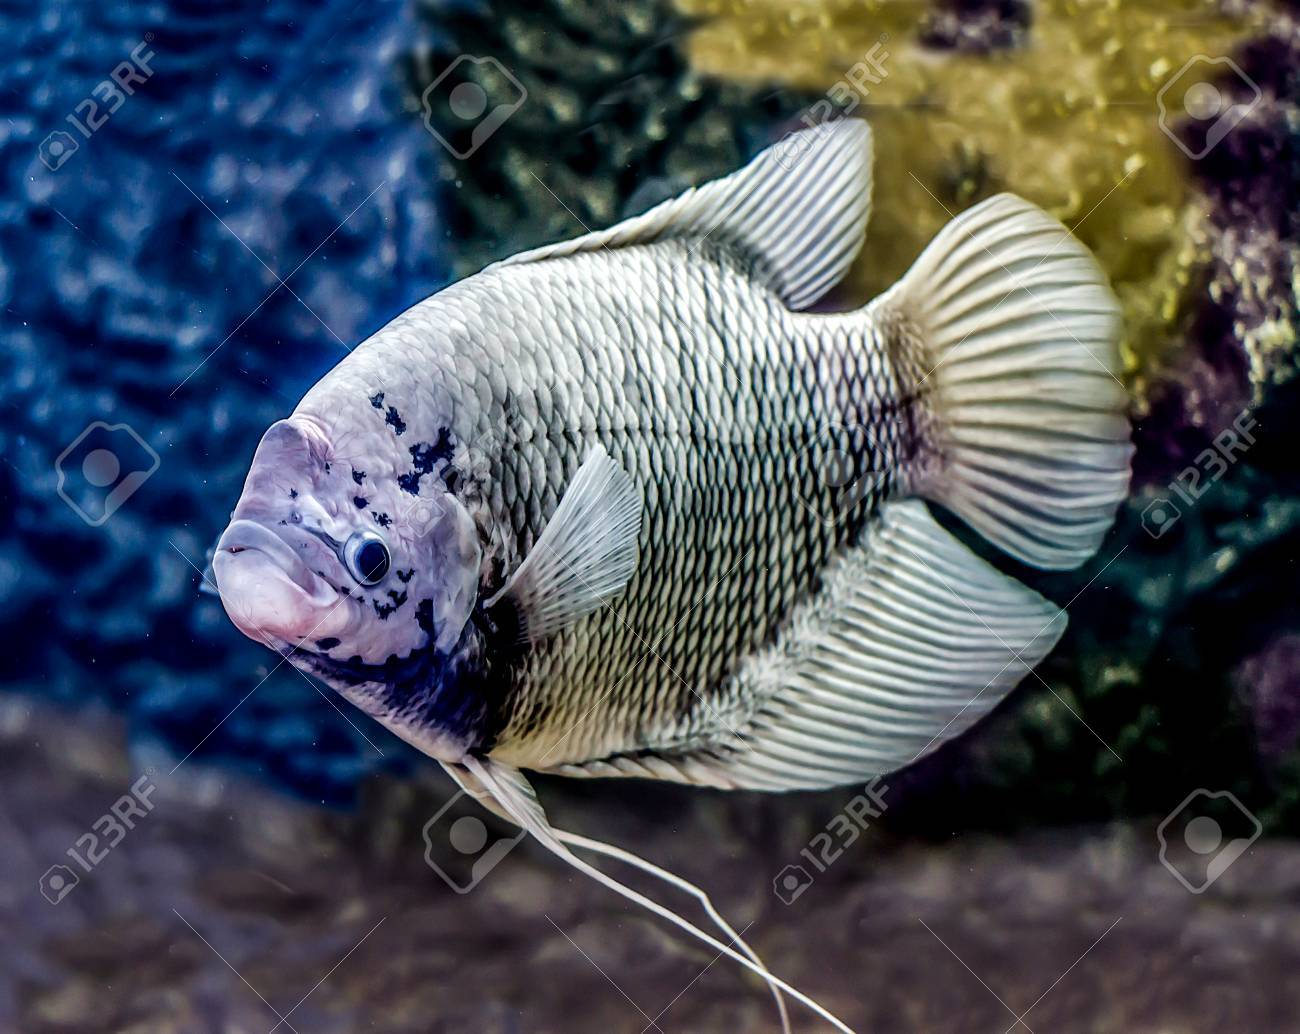 Beautiful Tilapia Fish In Water Tank Stock Photo